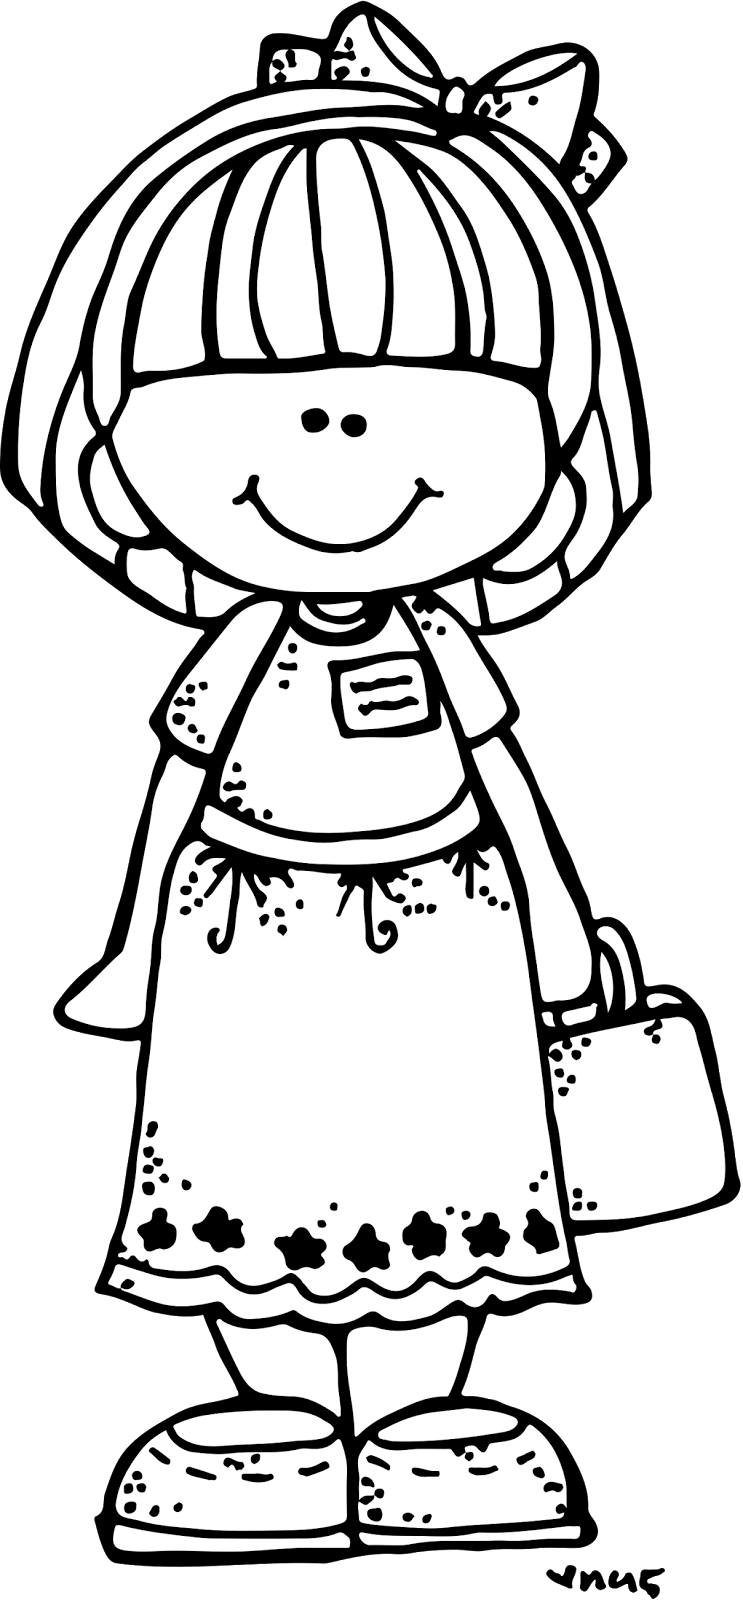 picture free Lds family clipart black and white. Melonheadz illustrating future missionaries